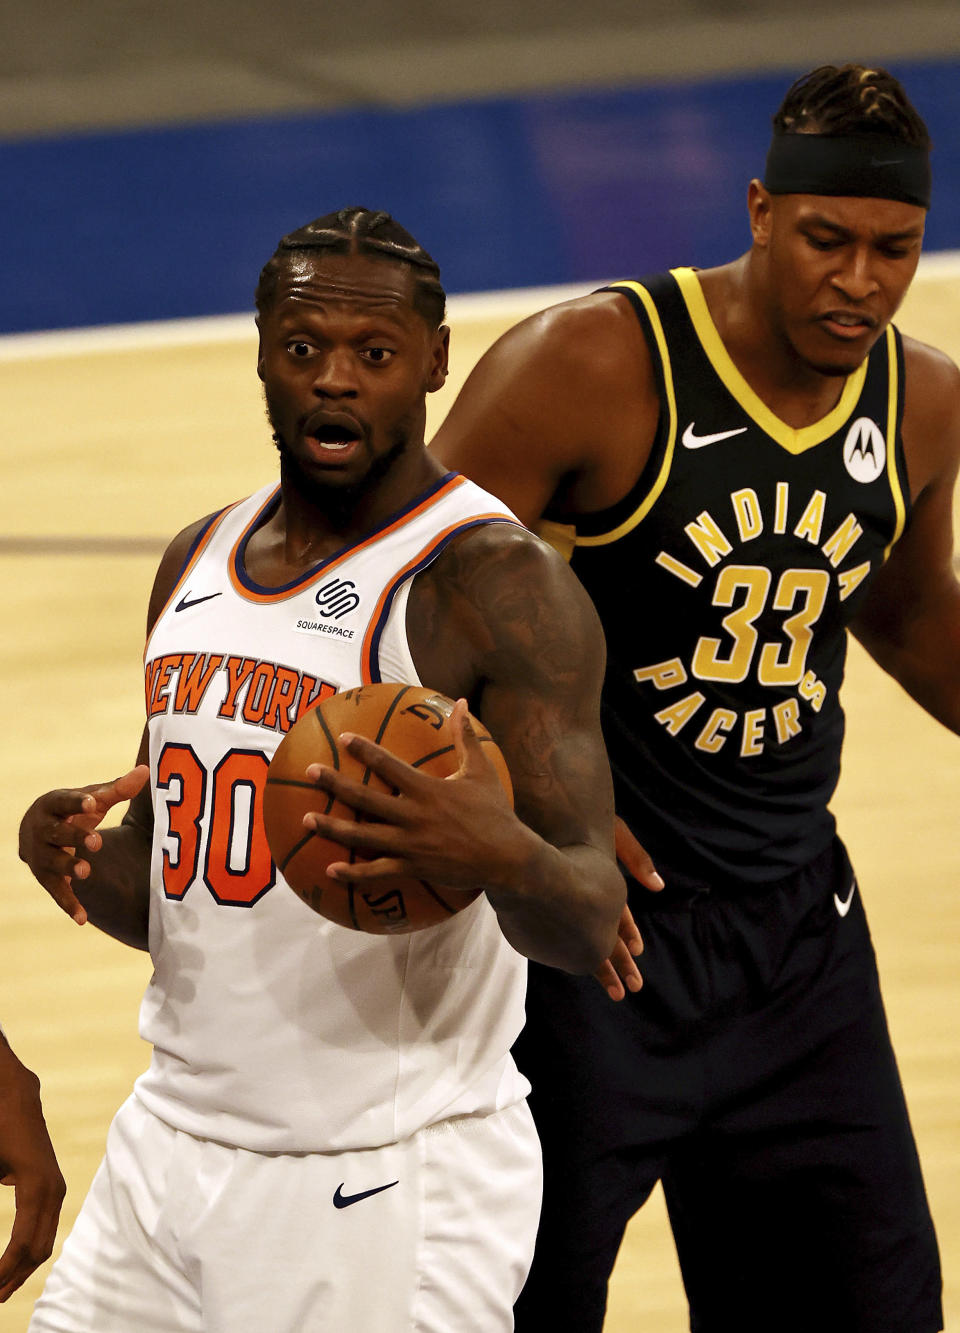 New York Knicks' Julius Randle (30) reacts after he was called for an offensive foul in the fourth quarter as Indiana Pacers' Myles Turner (33) looks on during an NBA basketball game Saturday, Feb. 27, 2021, in New York. (Elsa/Pool Photo via AP)